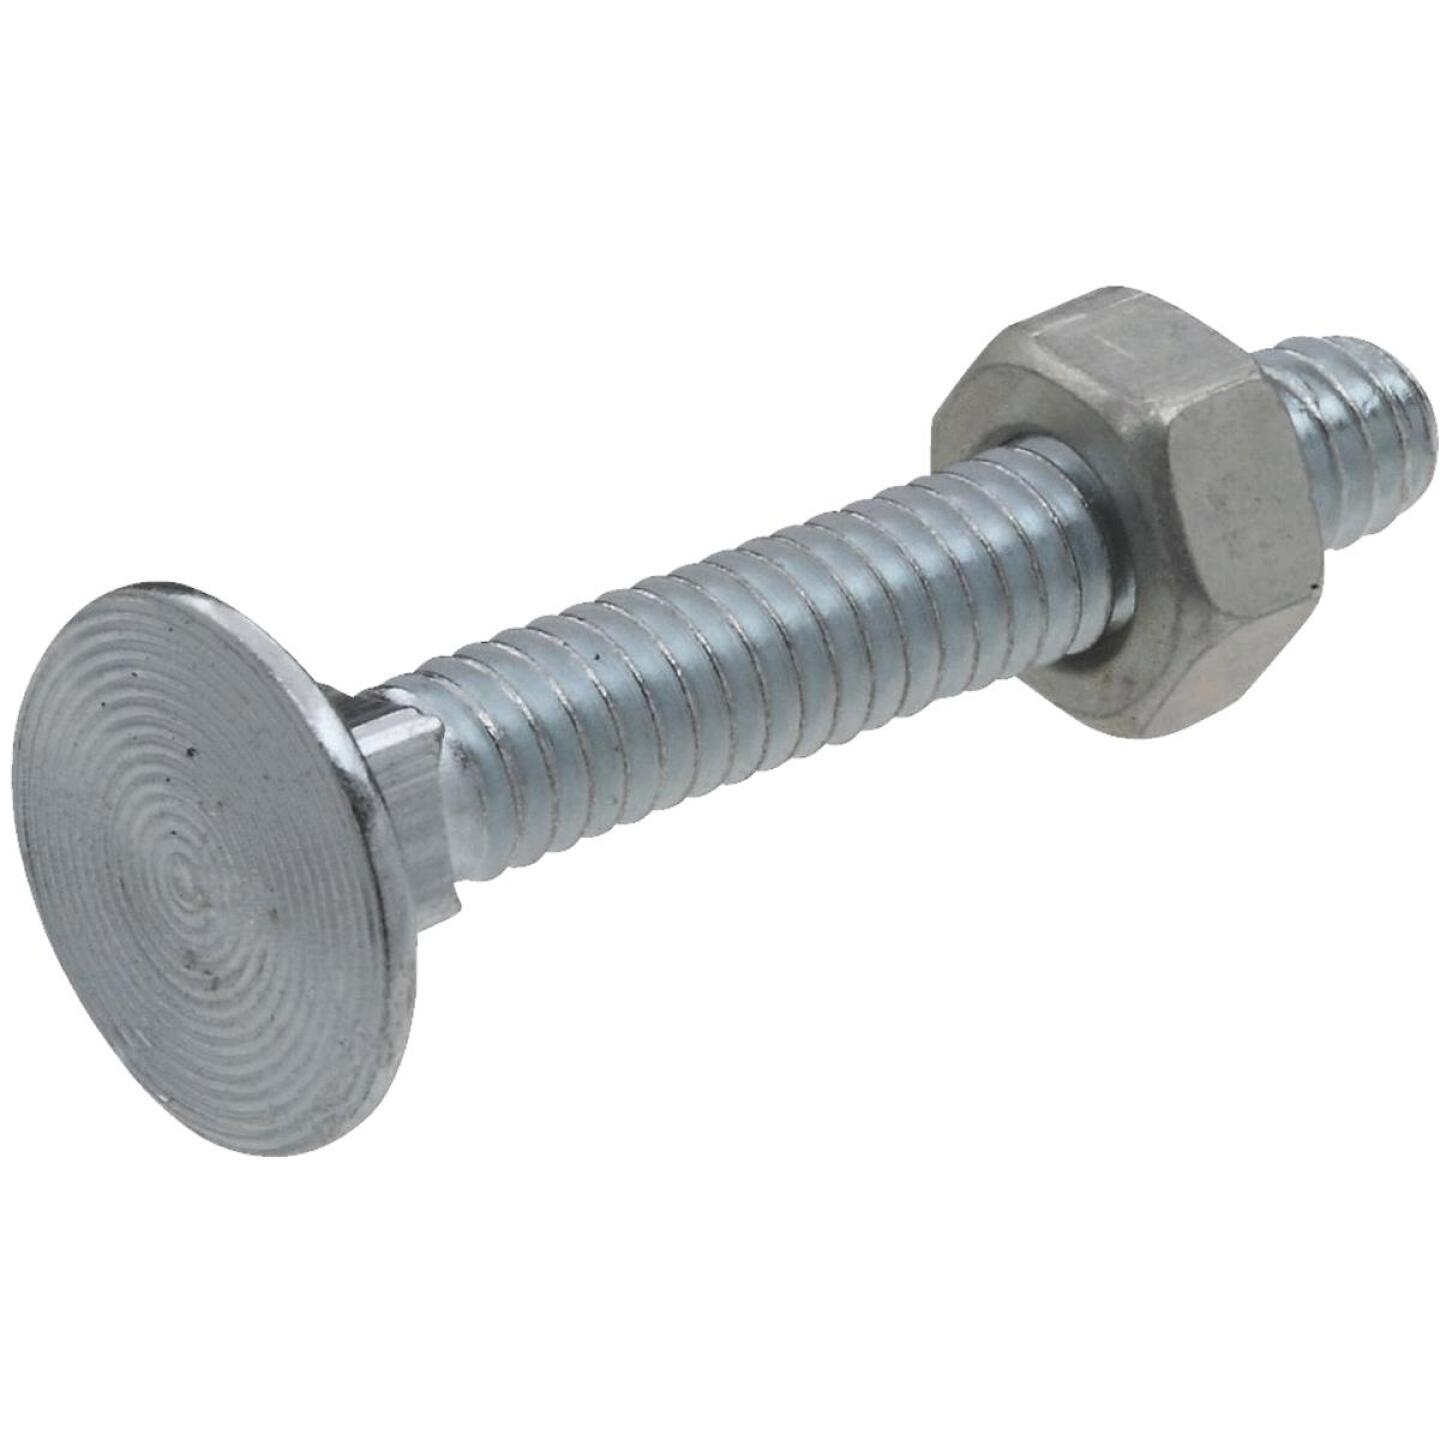 National 1/4 In. x 1-3/4 In. Zinc Carriage Bolt (12 Ct.) Image 1